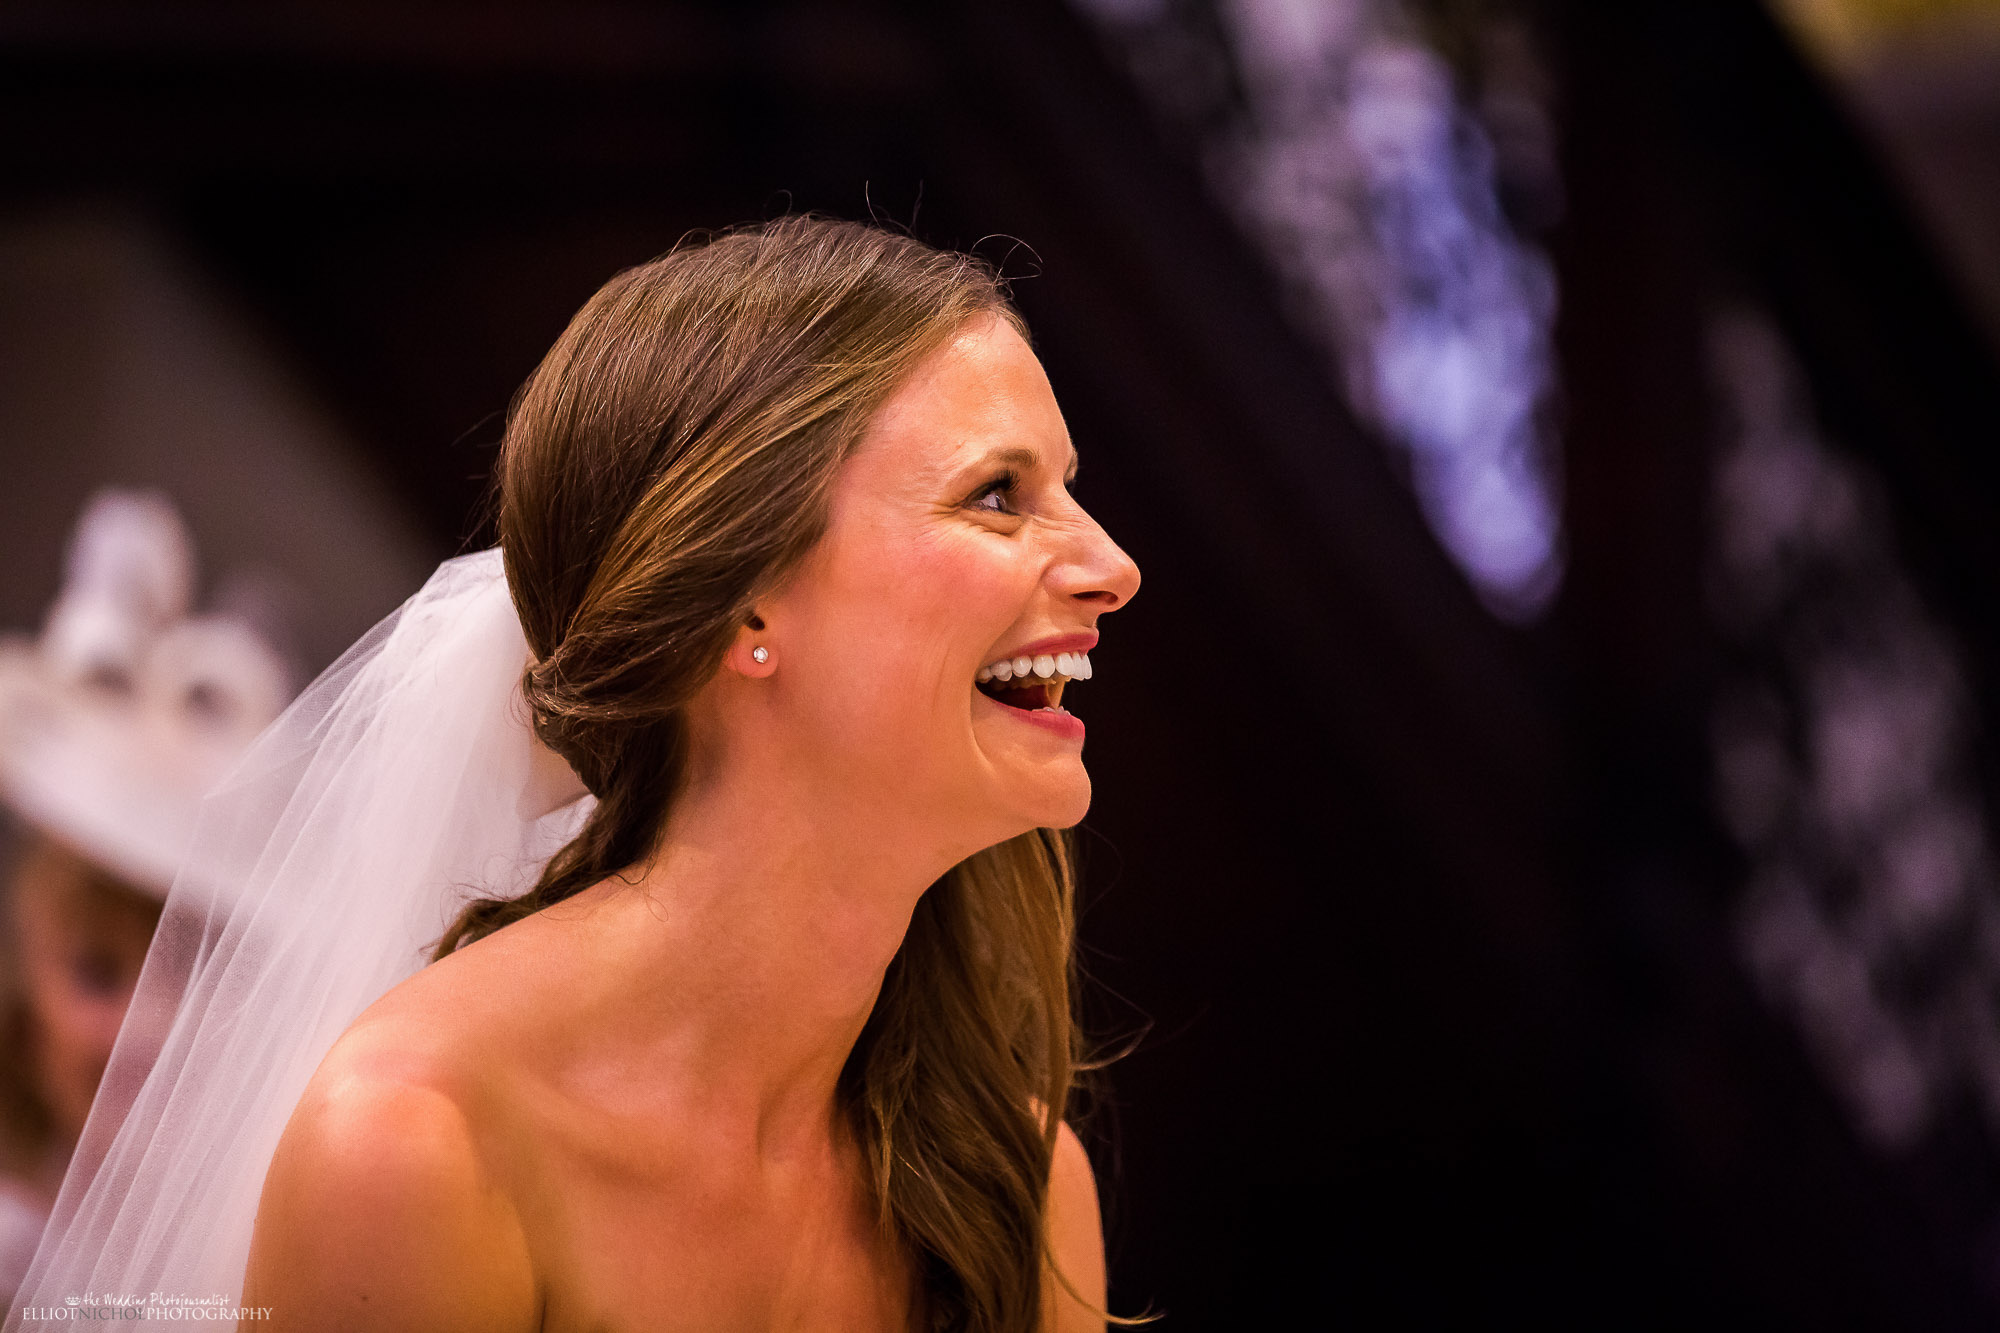 laughing-bride-wedding-ceremony-church-photography